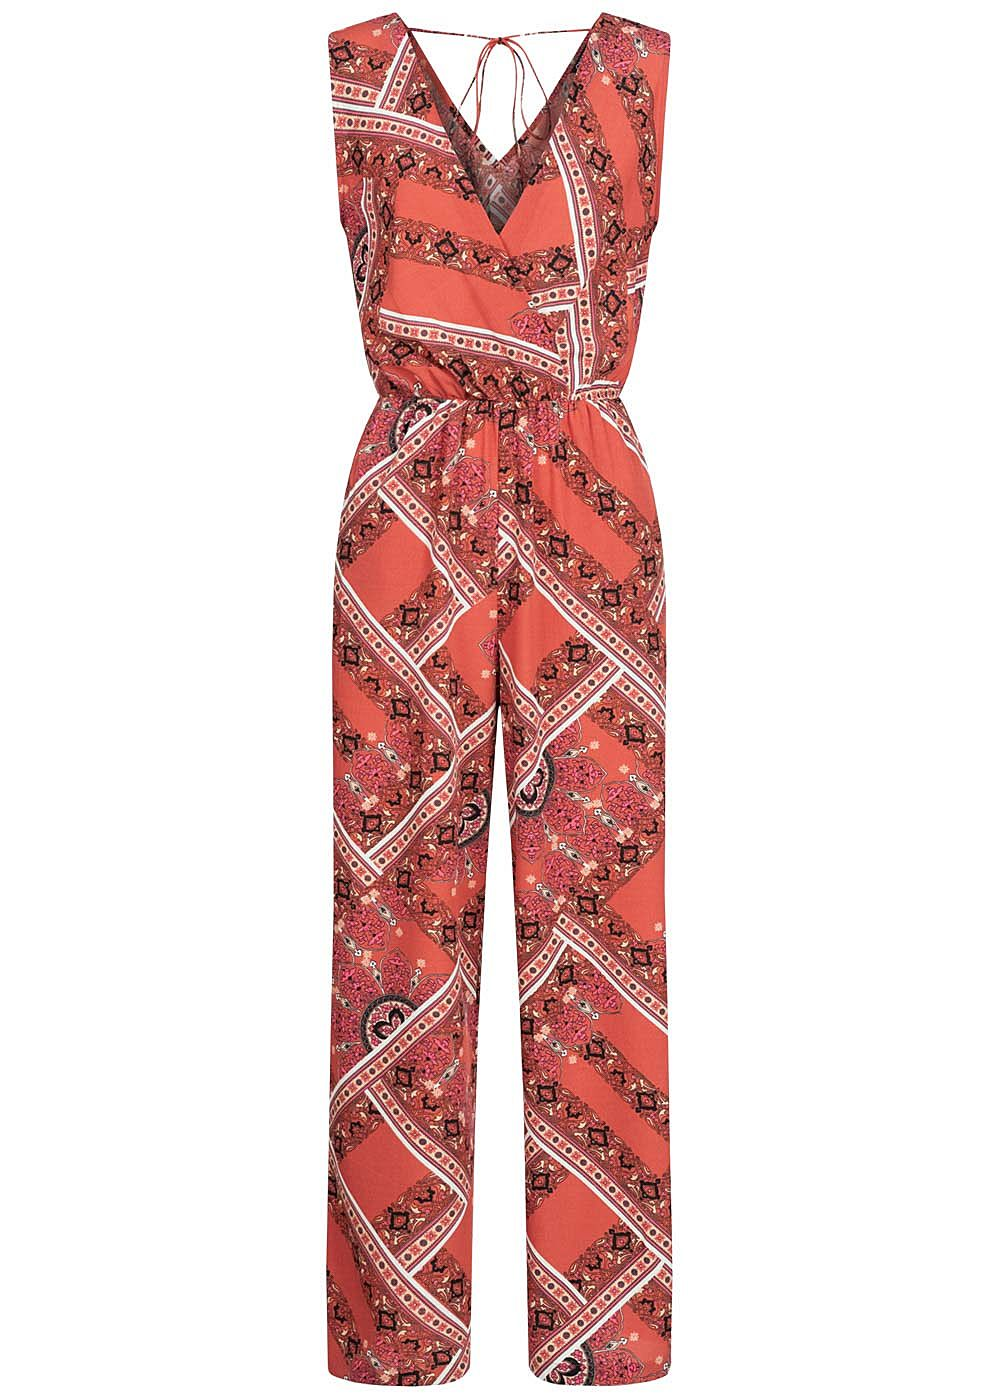 ONLY Damen V-Neck Jumpsuit weiter Schnitt Wickeloptik Aztek Print hot sauce rot - Art.-Nr.: 20041923